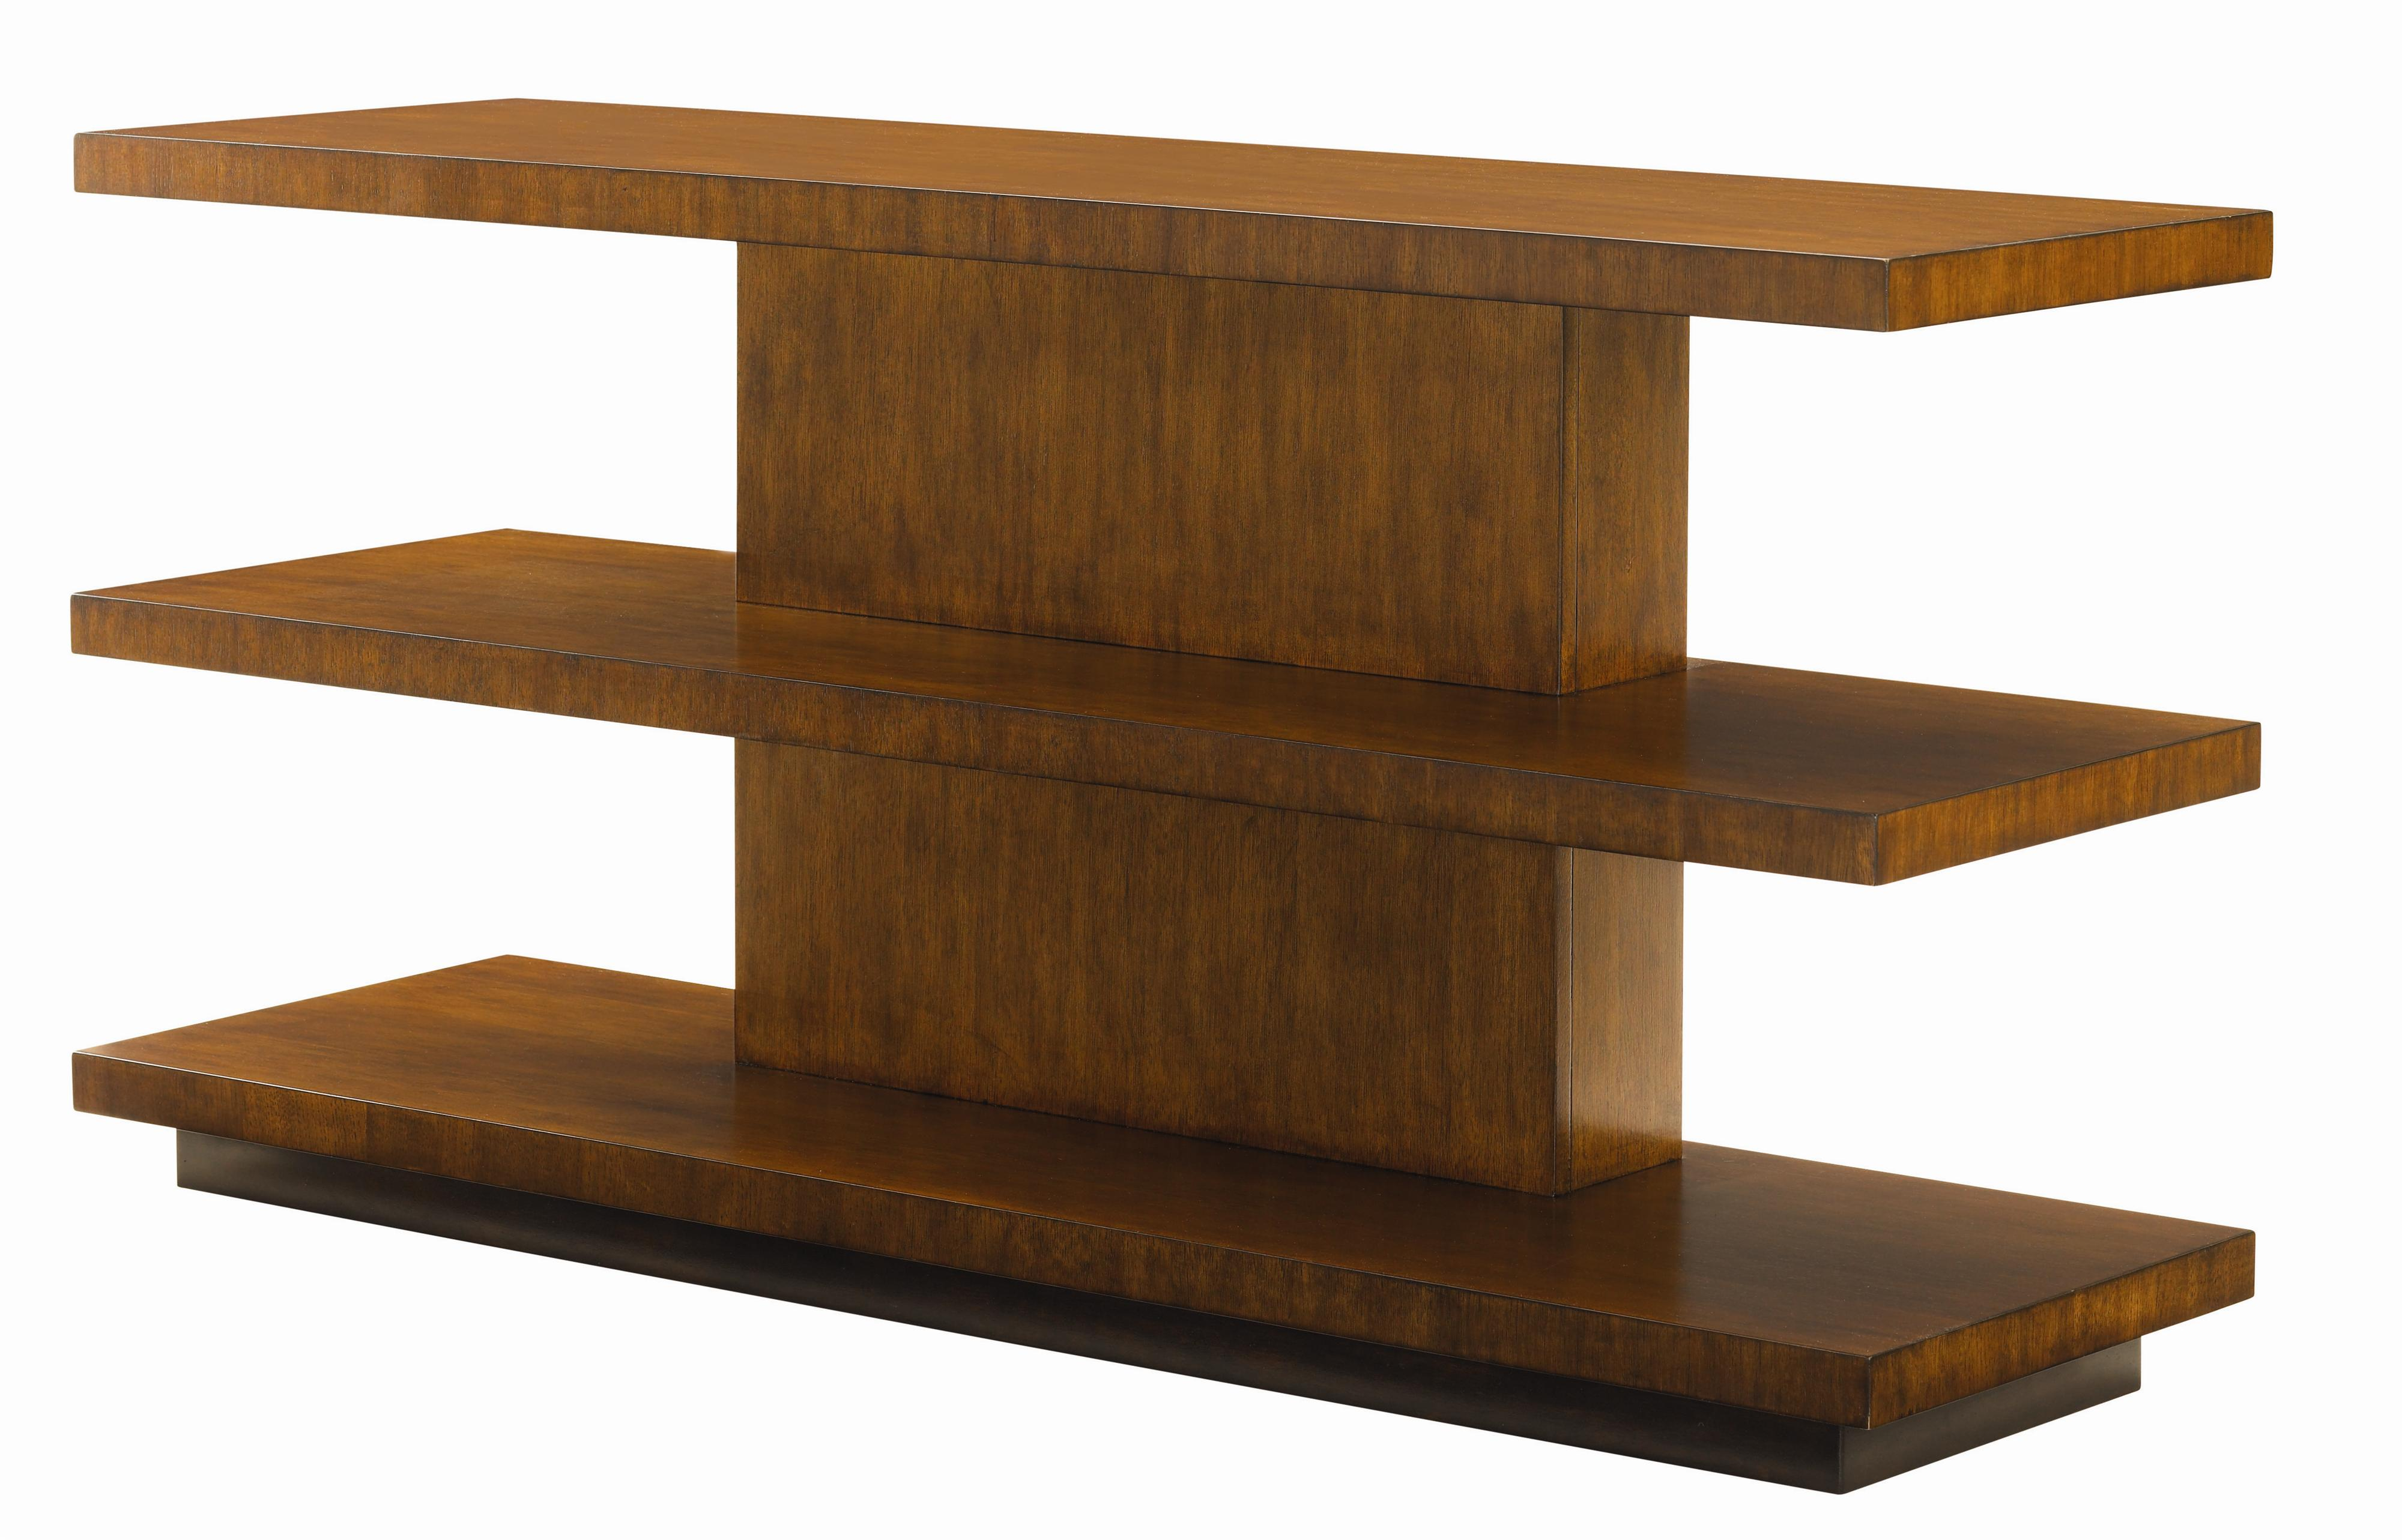 Ocean Club Lagoon Sofa Table by Tommy Bahama Home at Baer's Furniture